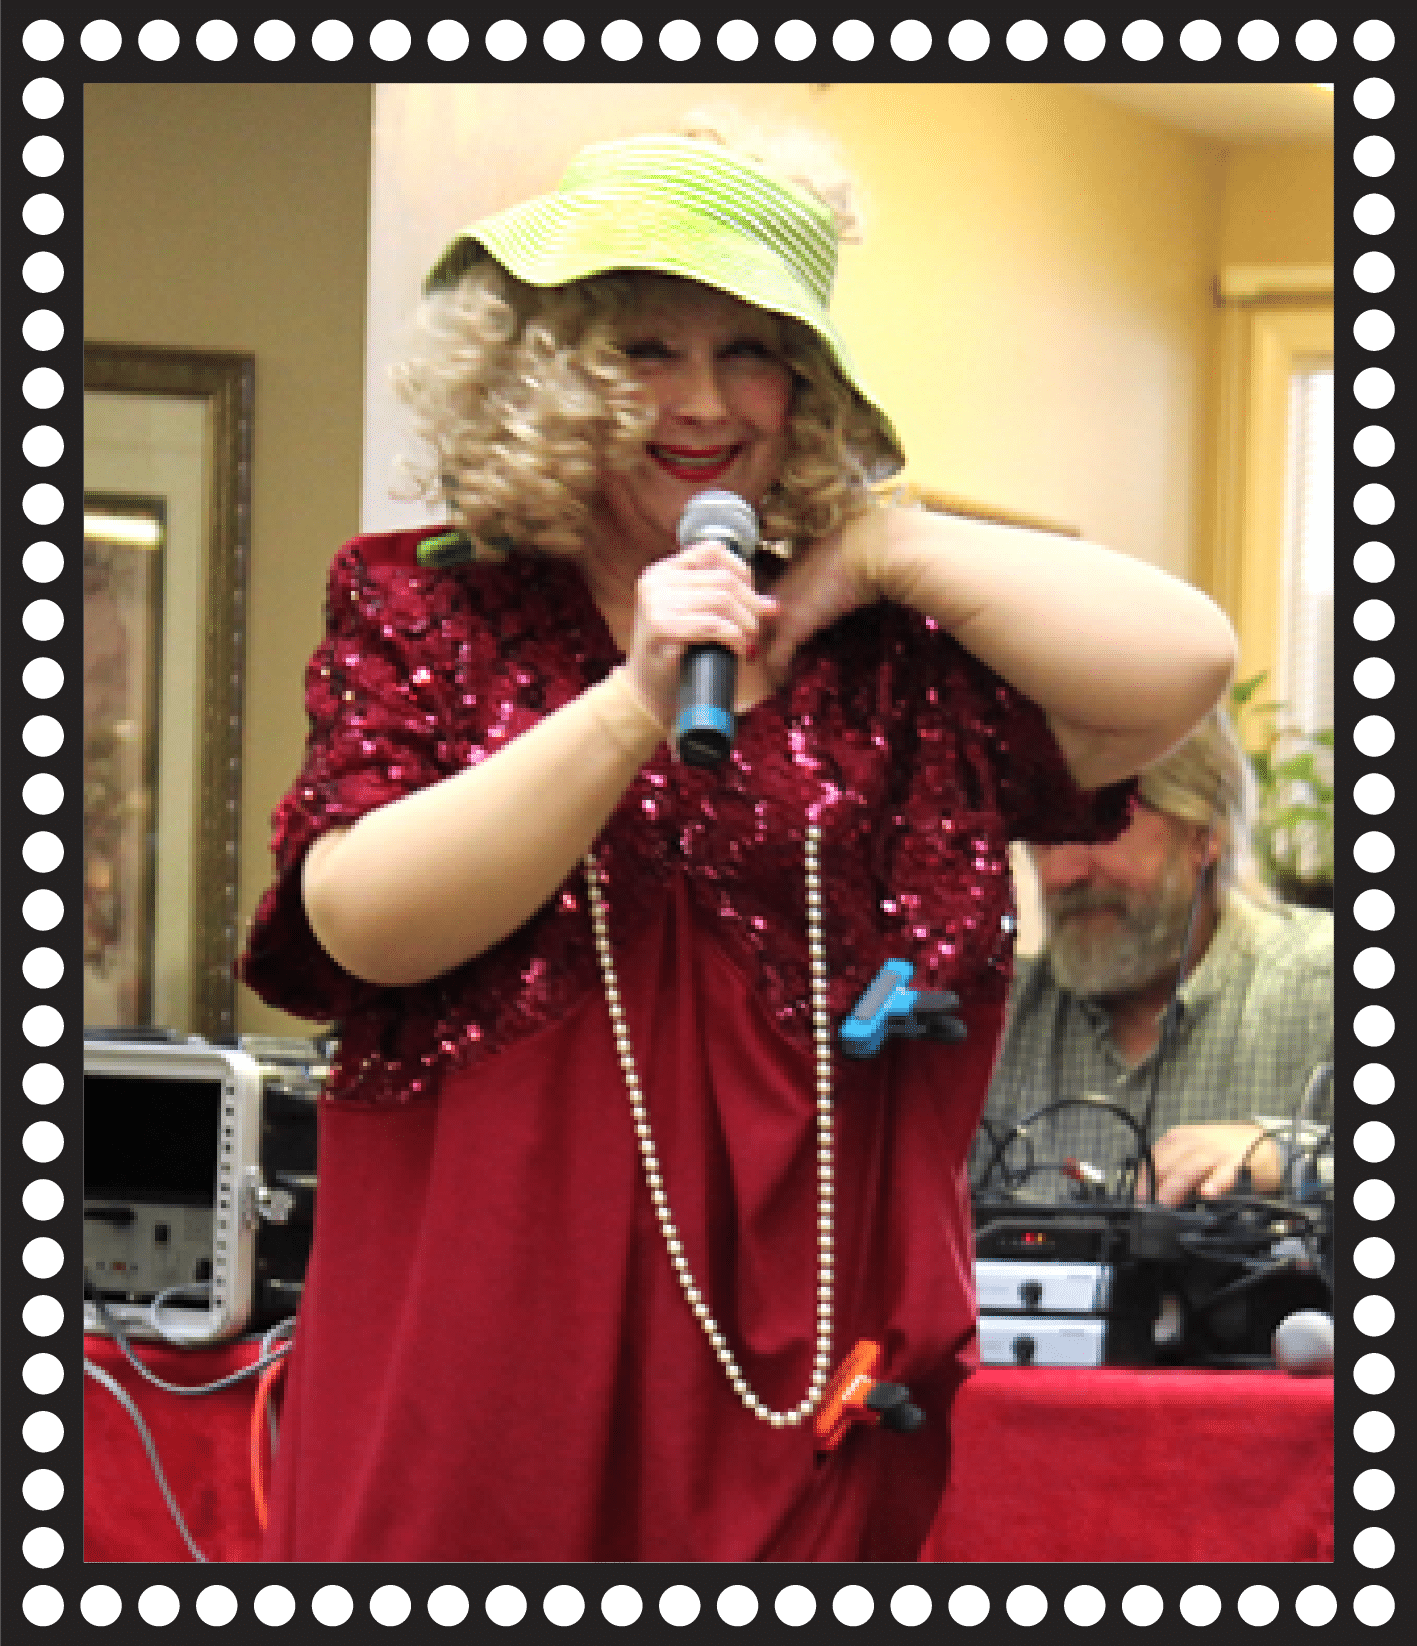 Woman performing with mircrophone and hat facing left